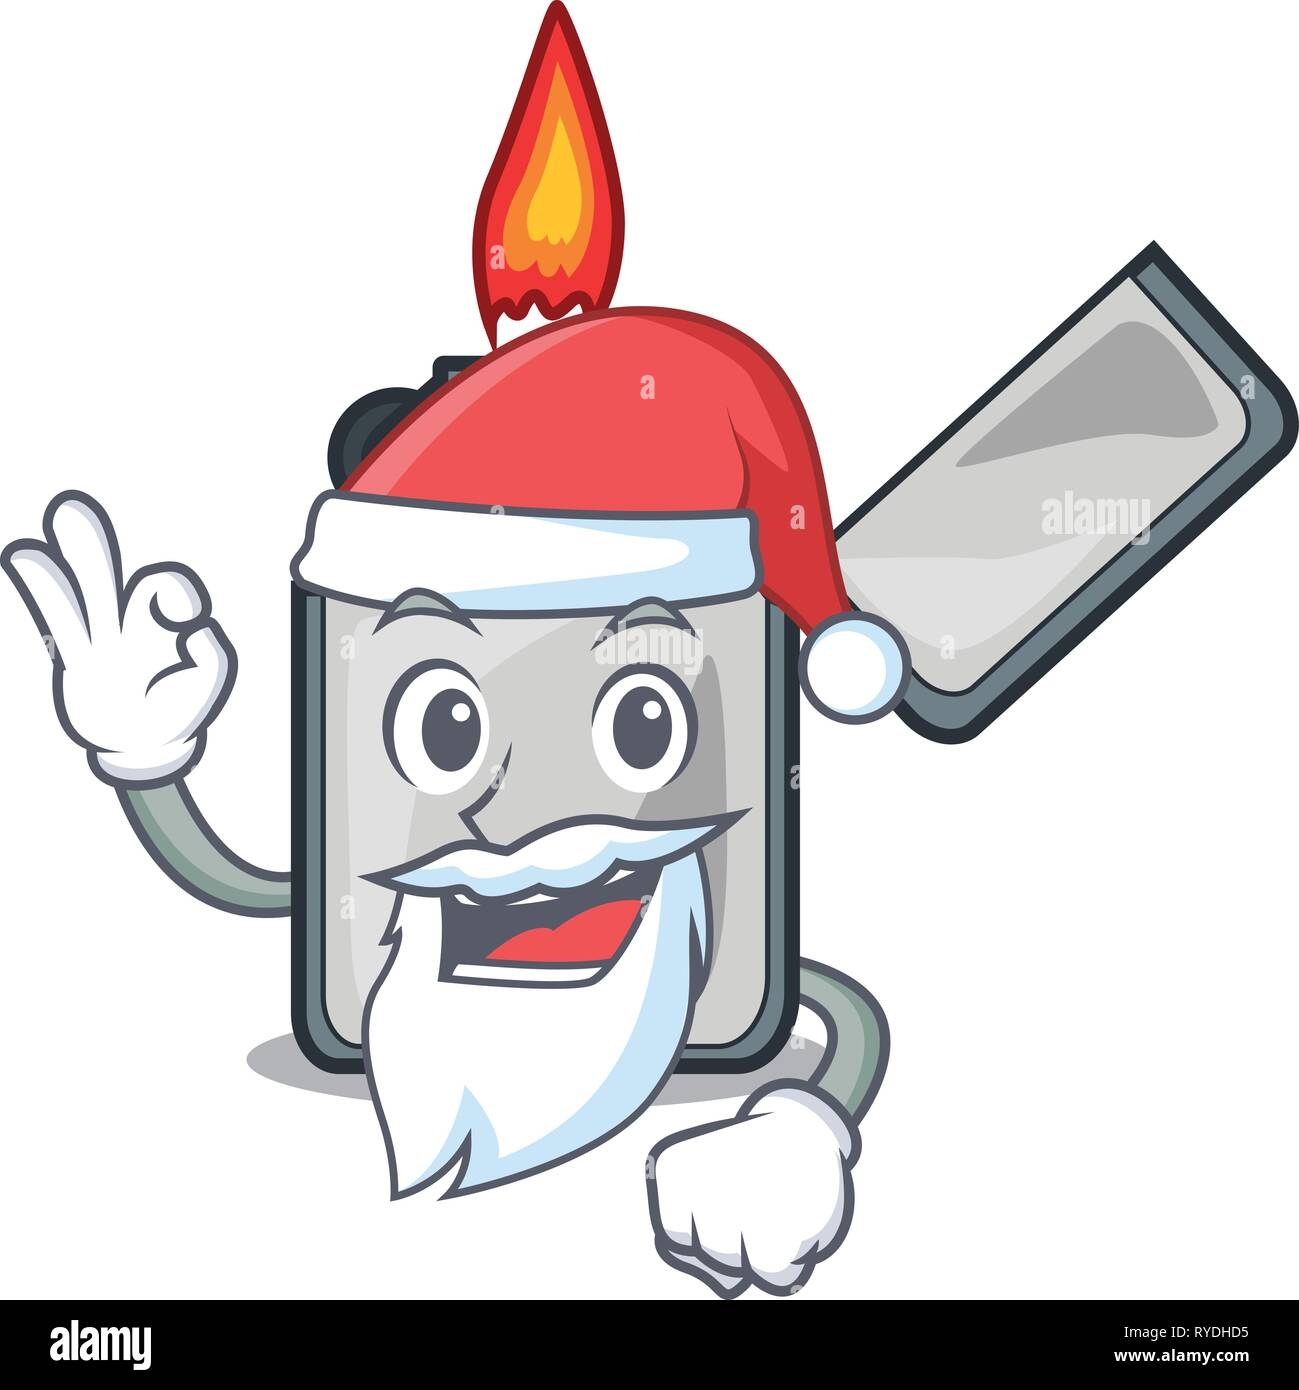 Santa cigarette lighters are placed cartoon bags - Stock Image